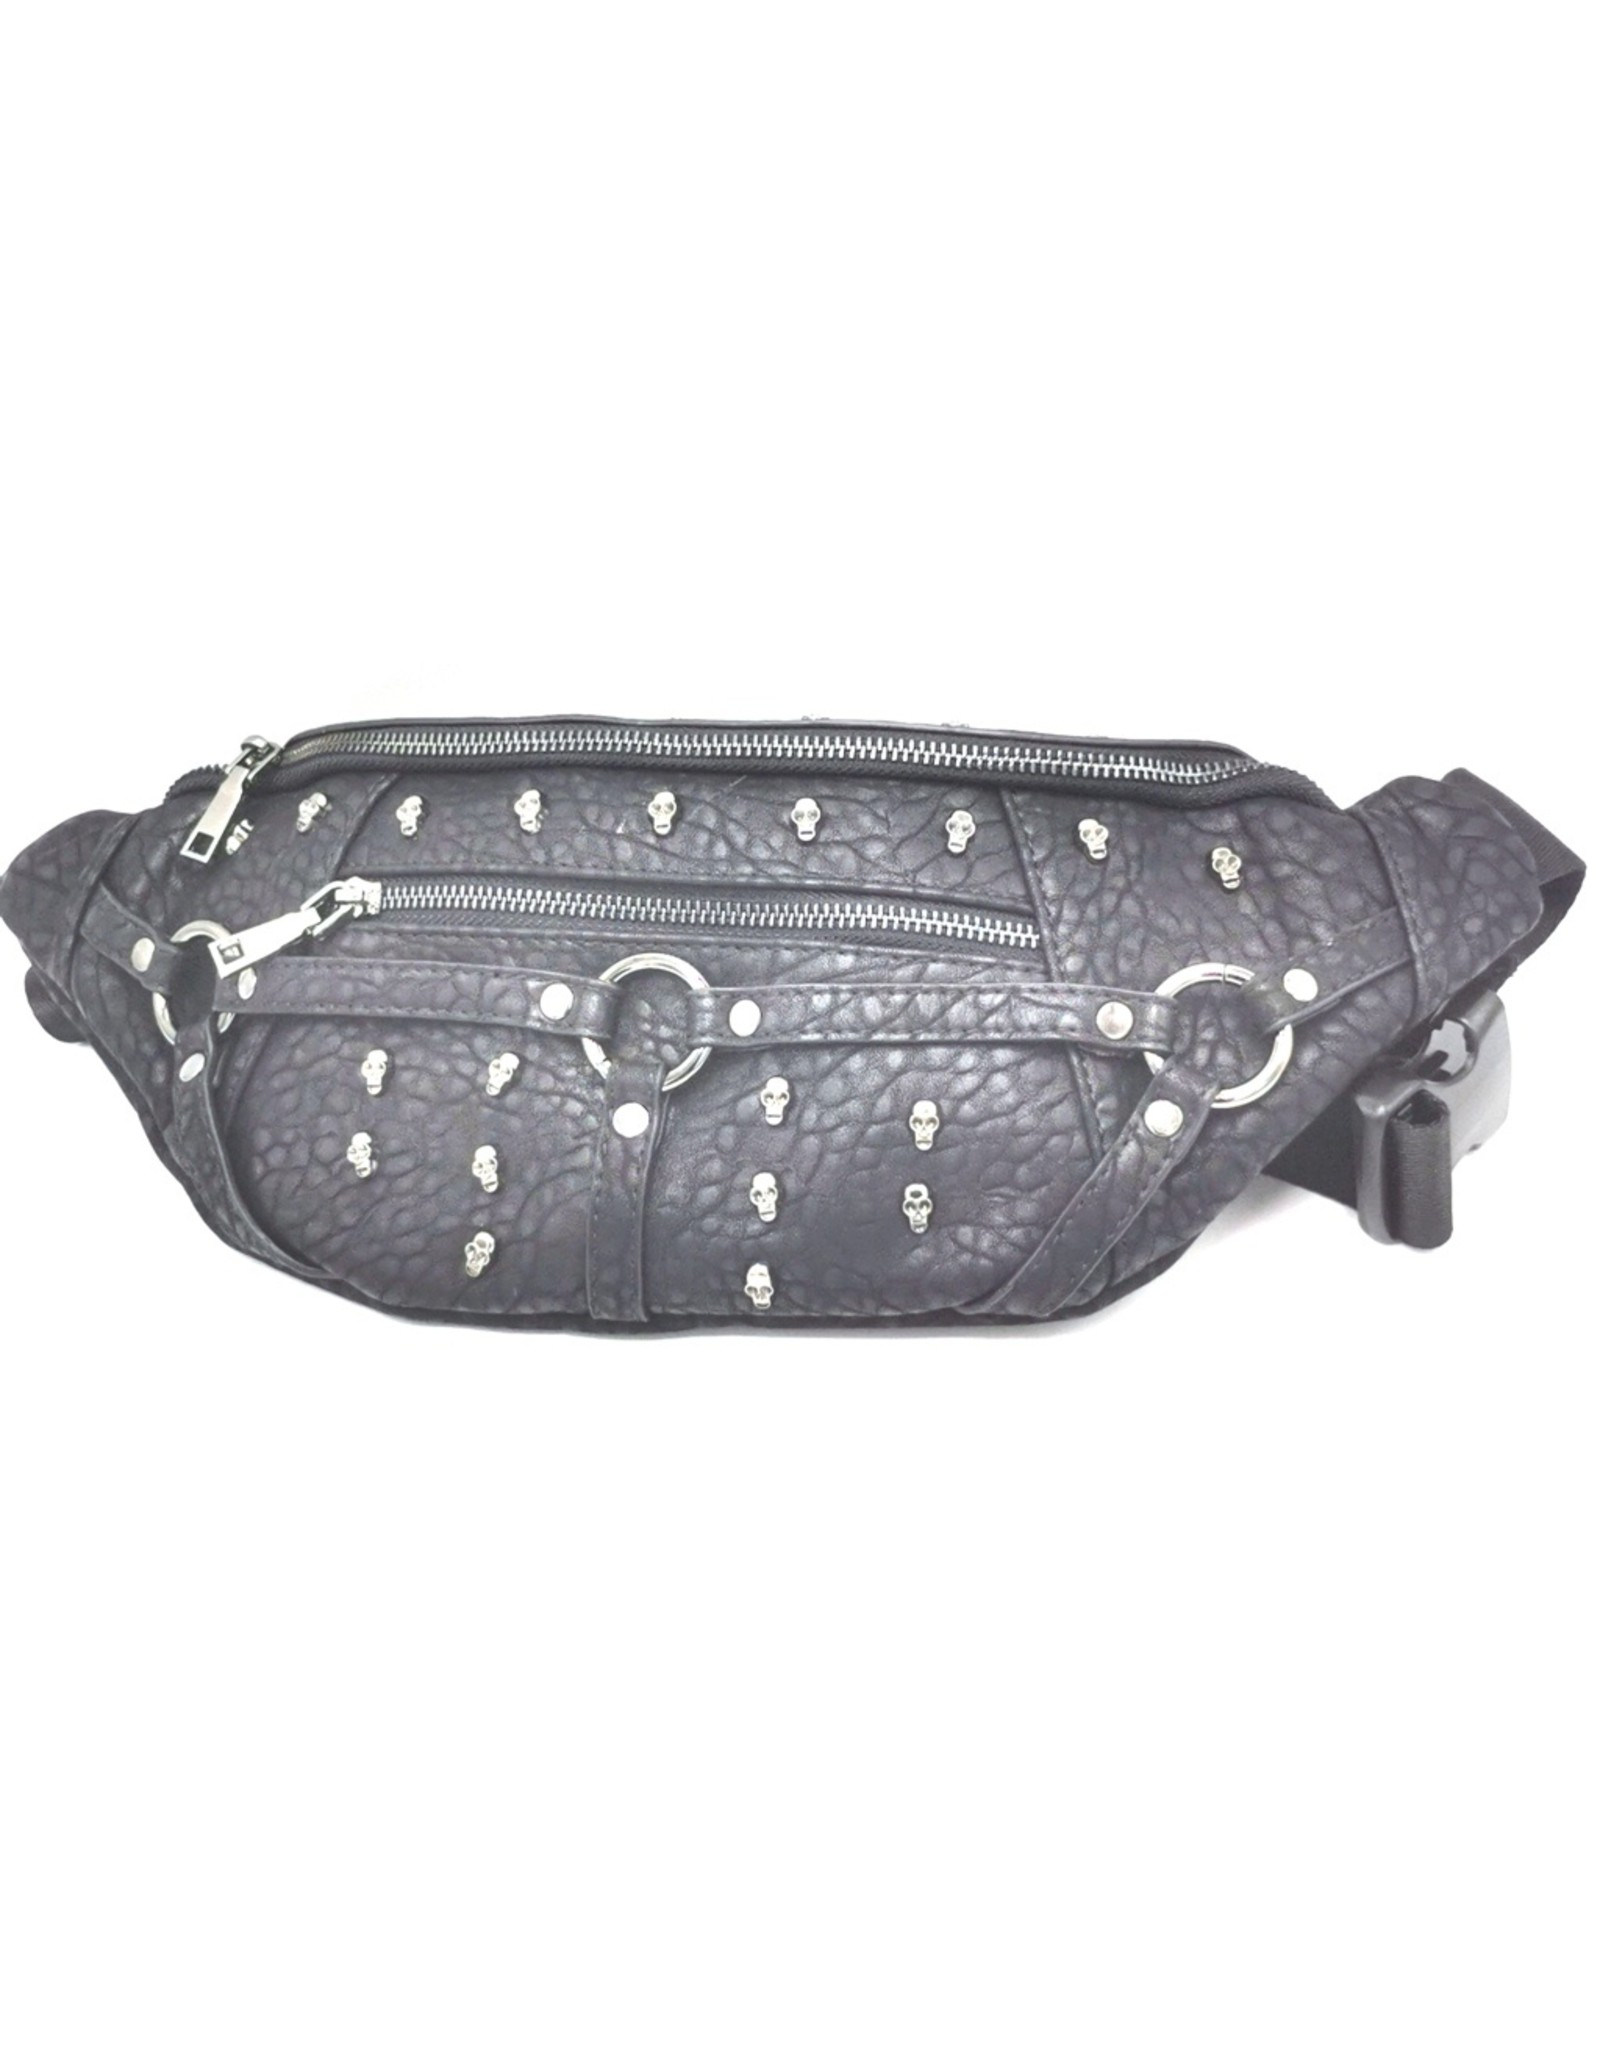 Dark Desire Gothic bags Steampunk bags - Gothic waist bag with small metal skulls